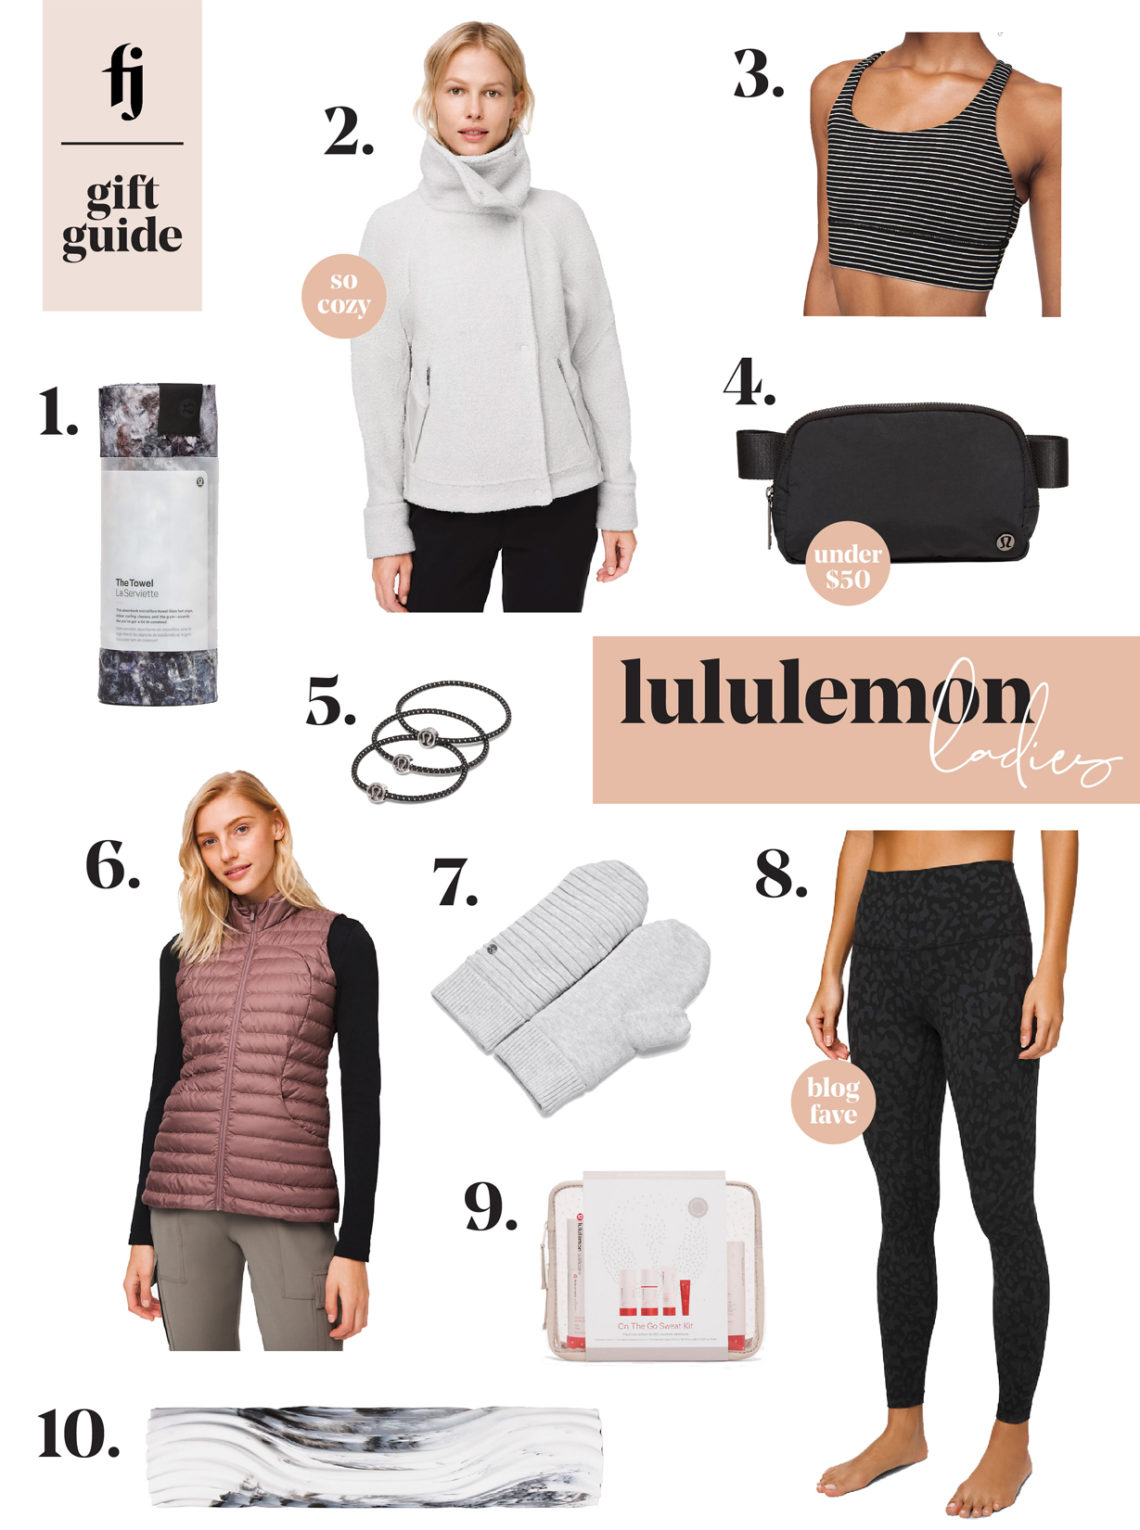 lululemon womens gift guide